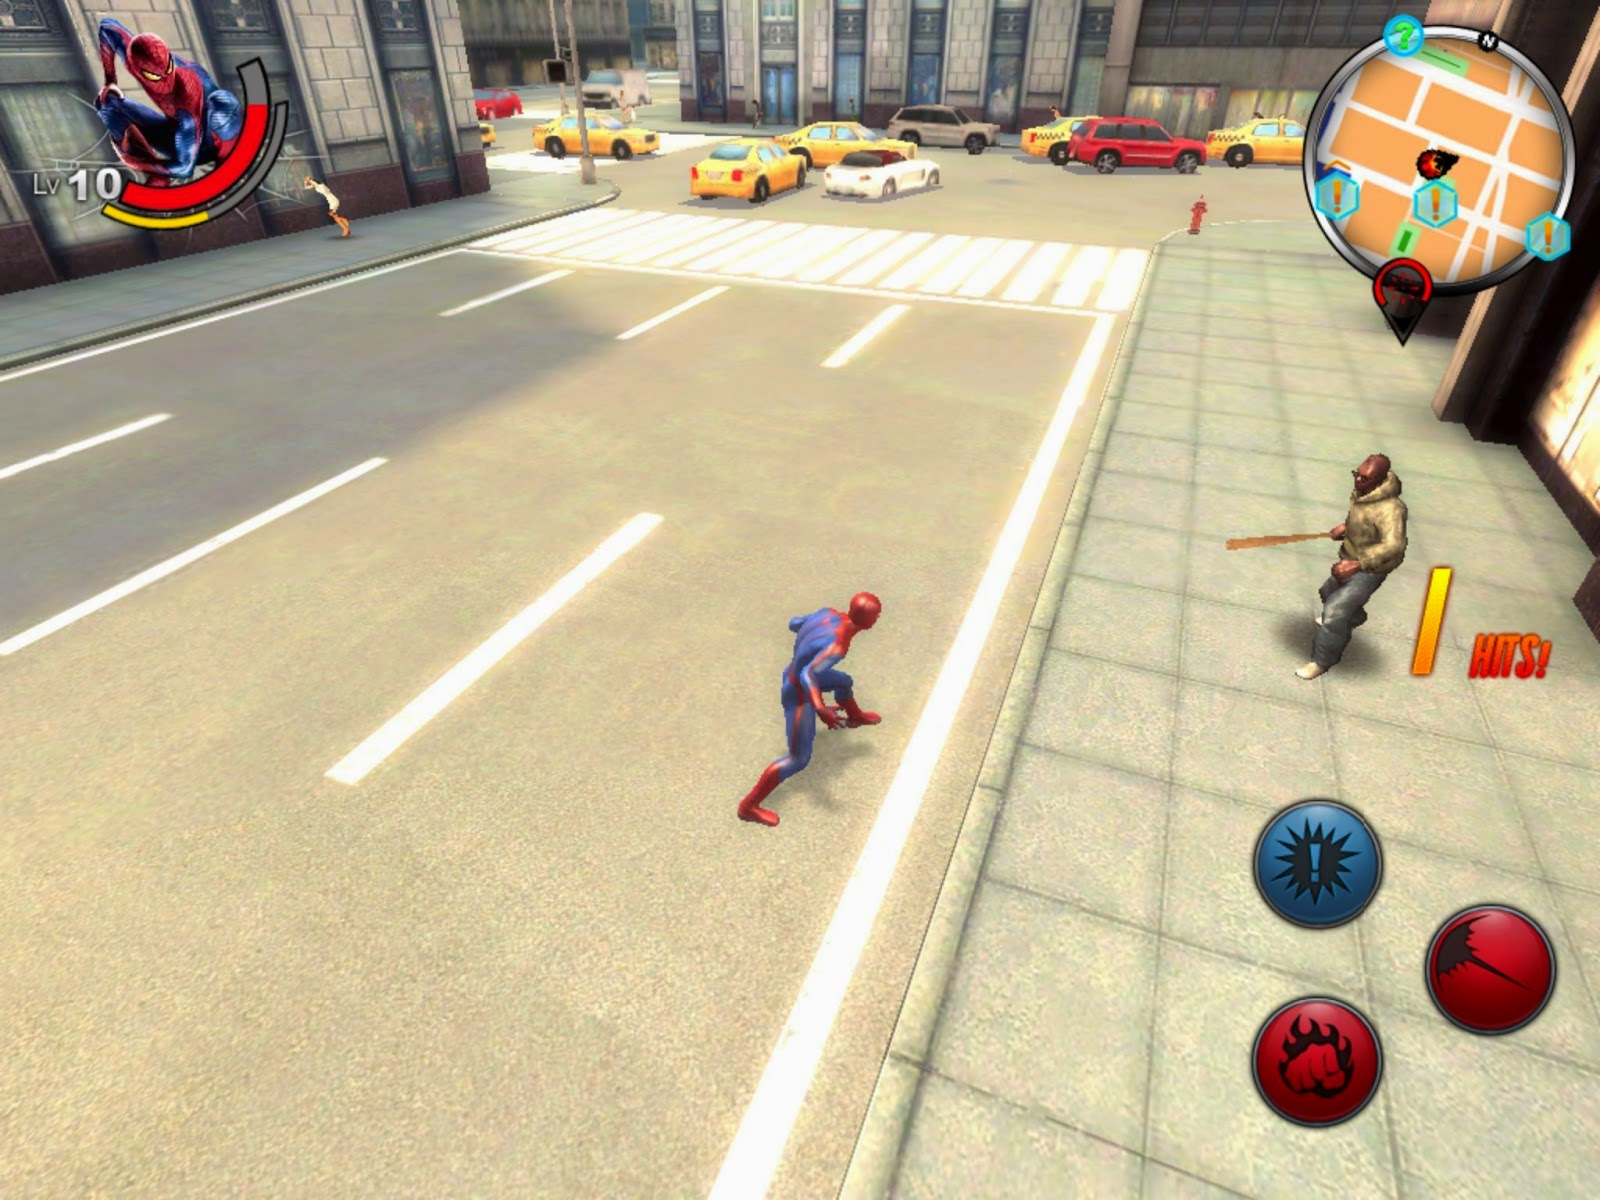 Download Apk Game The Amazing Spiderman , Beraksi Menjadi Spiderman!